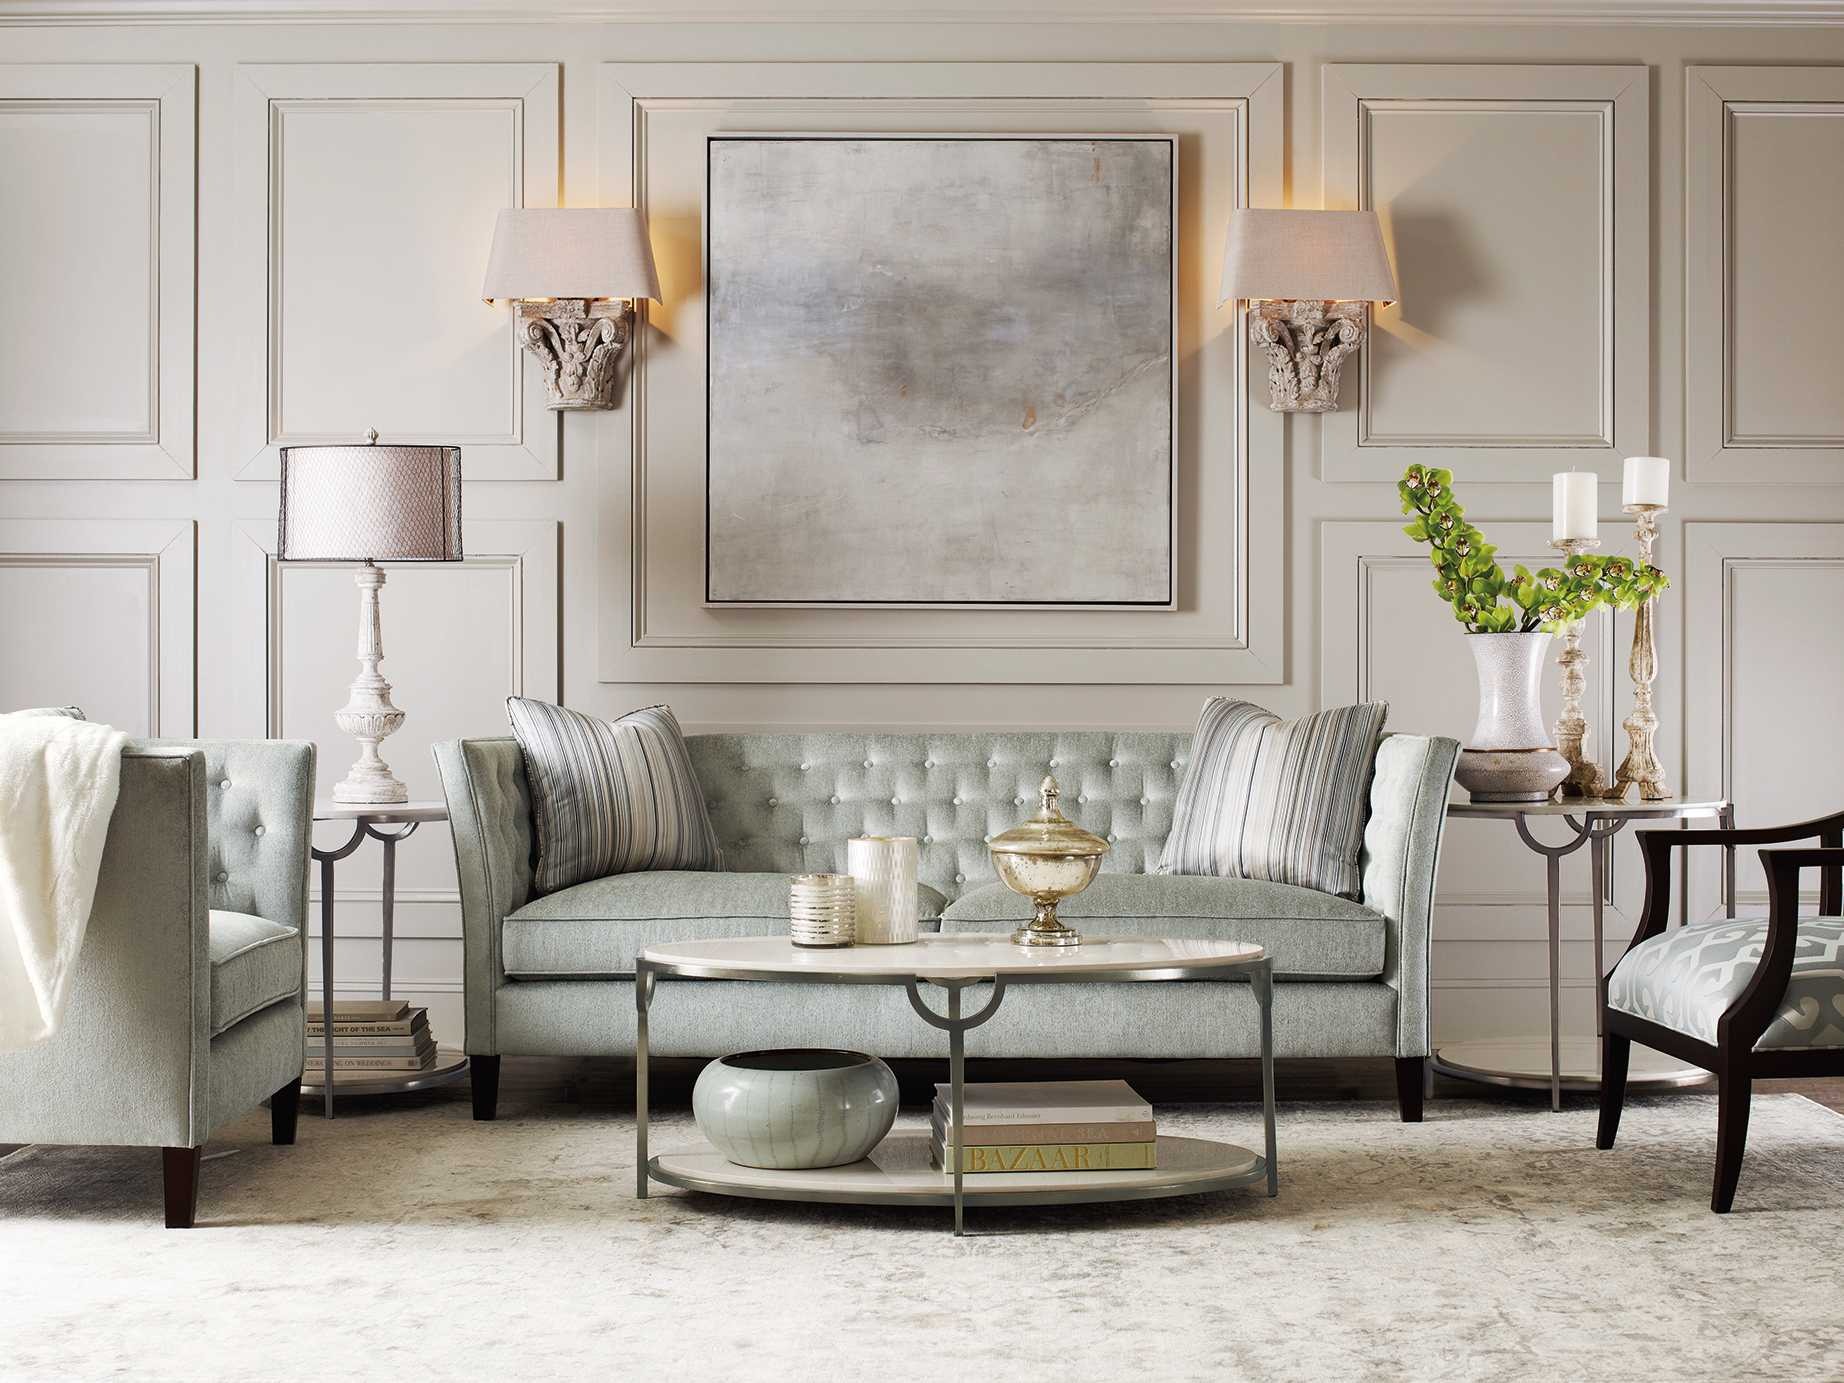 Bernhardt Morello Faux Carrar Marble With Oxidized Nickel